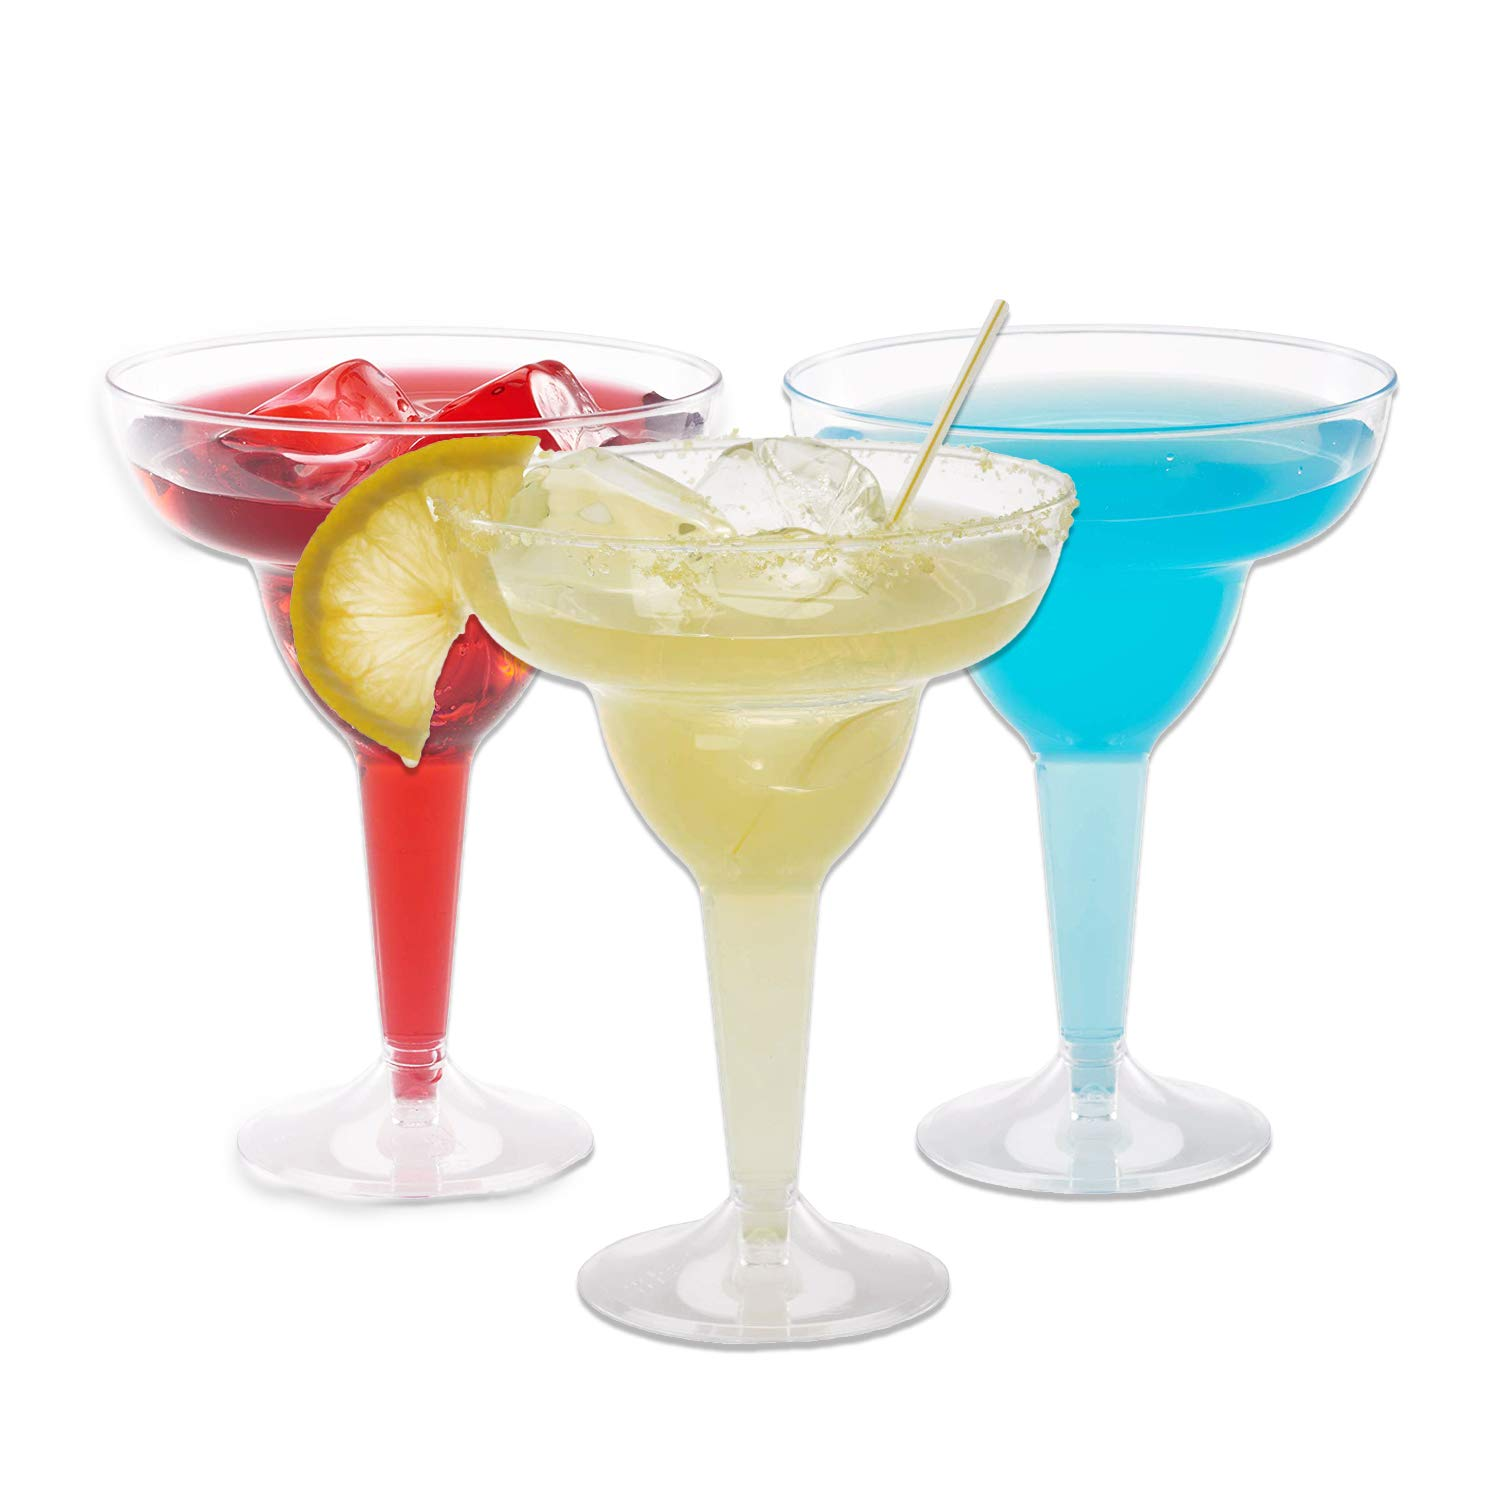 Plastic Margarita Glasses | 11.5 oz. - 50 Pack | Hard Clear Plastic Cocktail Cups | Disposable Party Cups | Large Margarita Glasses | Plastic Cocktail Coupe | Frozen Drink Cups by Prestee